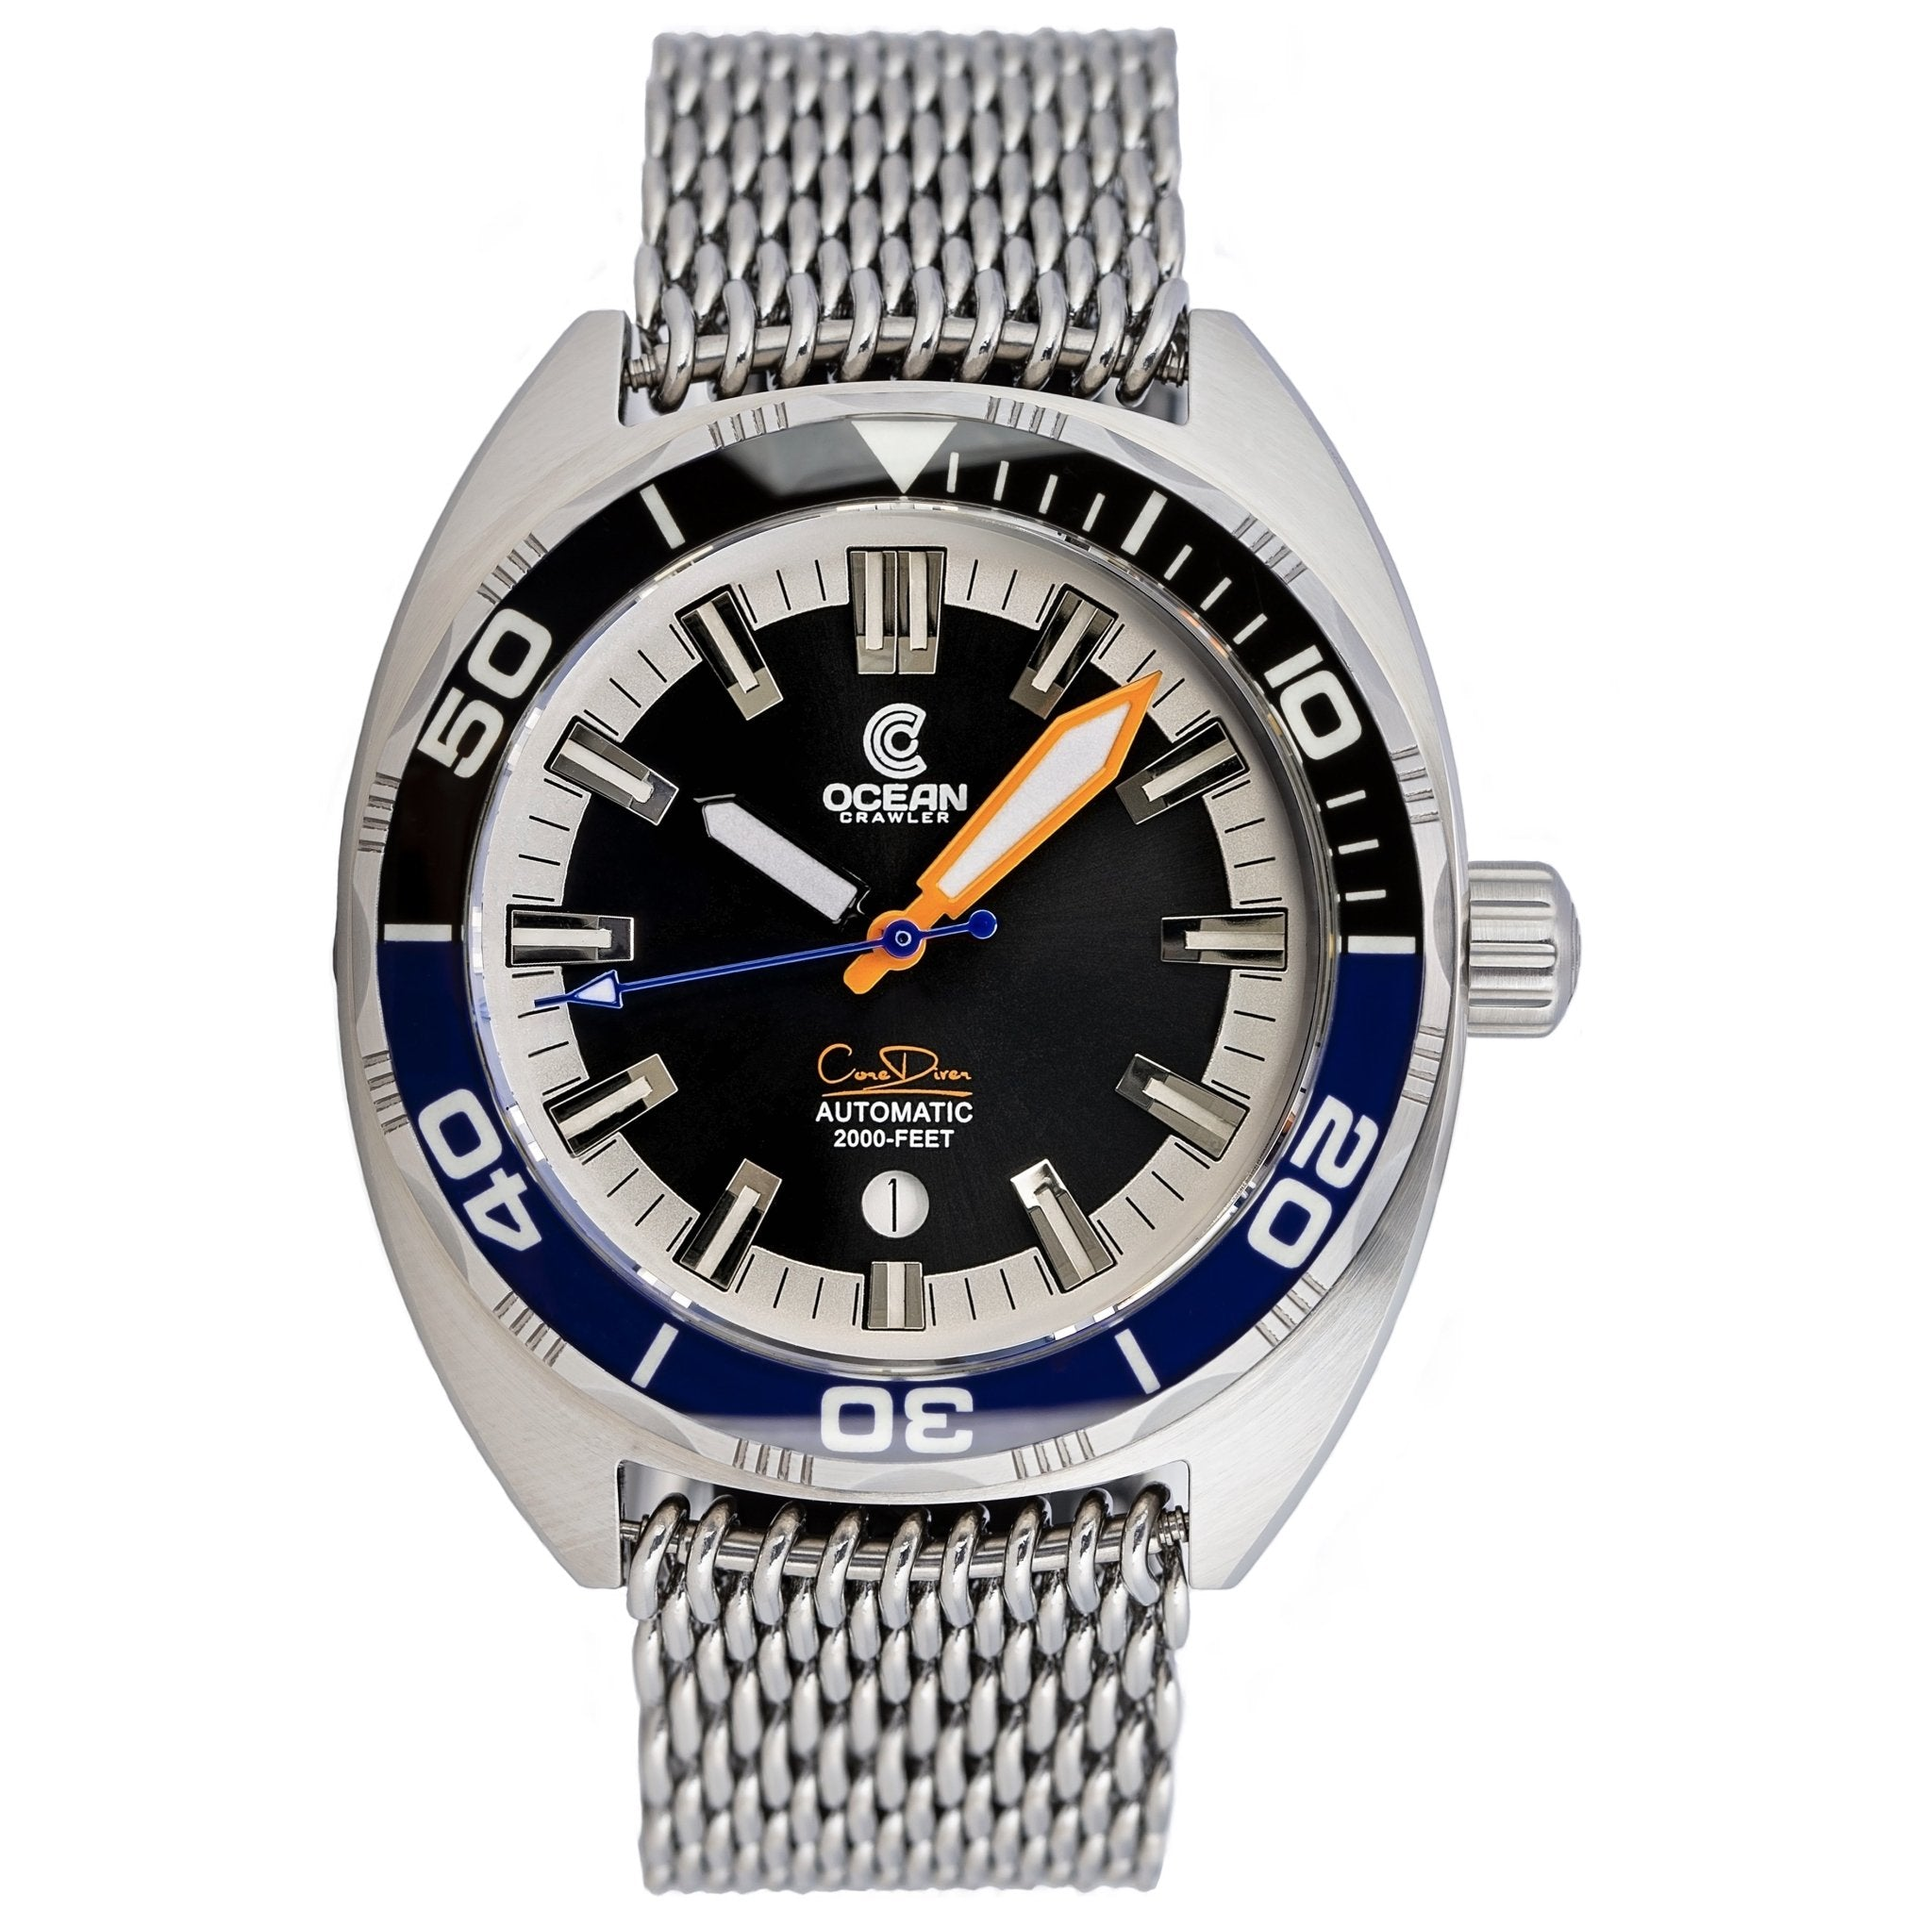 Ocean Crawler Core Diver - Black/Blue - Ocean Crawler Watch Co.